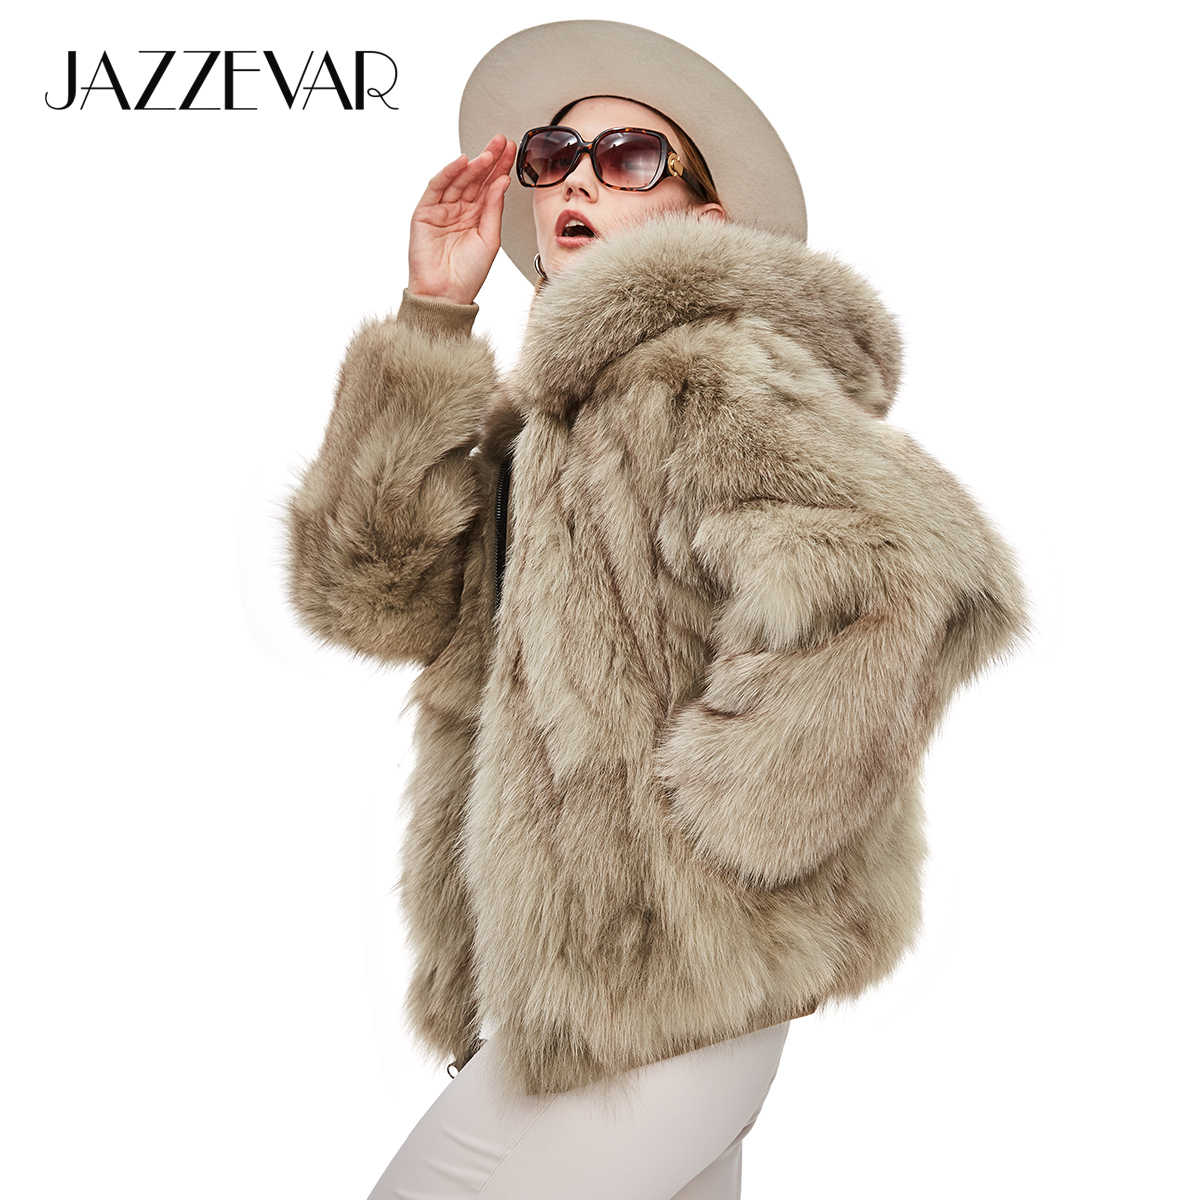 JAZZEVAR 2019 New Winter Socialite Fashion Women Luxurious Real Fox Fur Zipper Hooded Jacket Ladies outerwear Two sides for wear